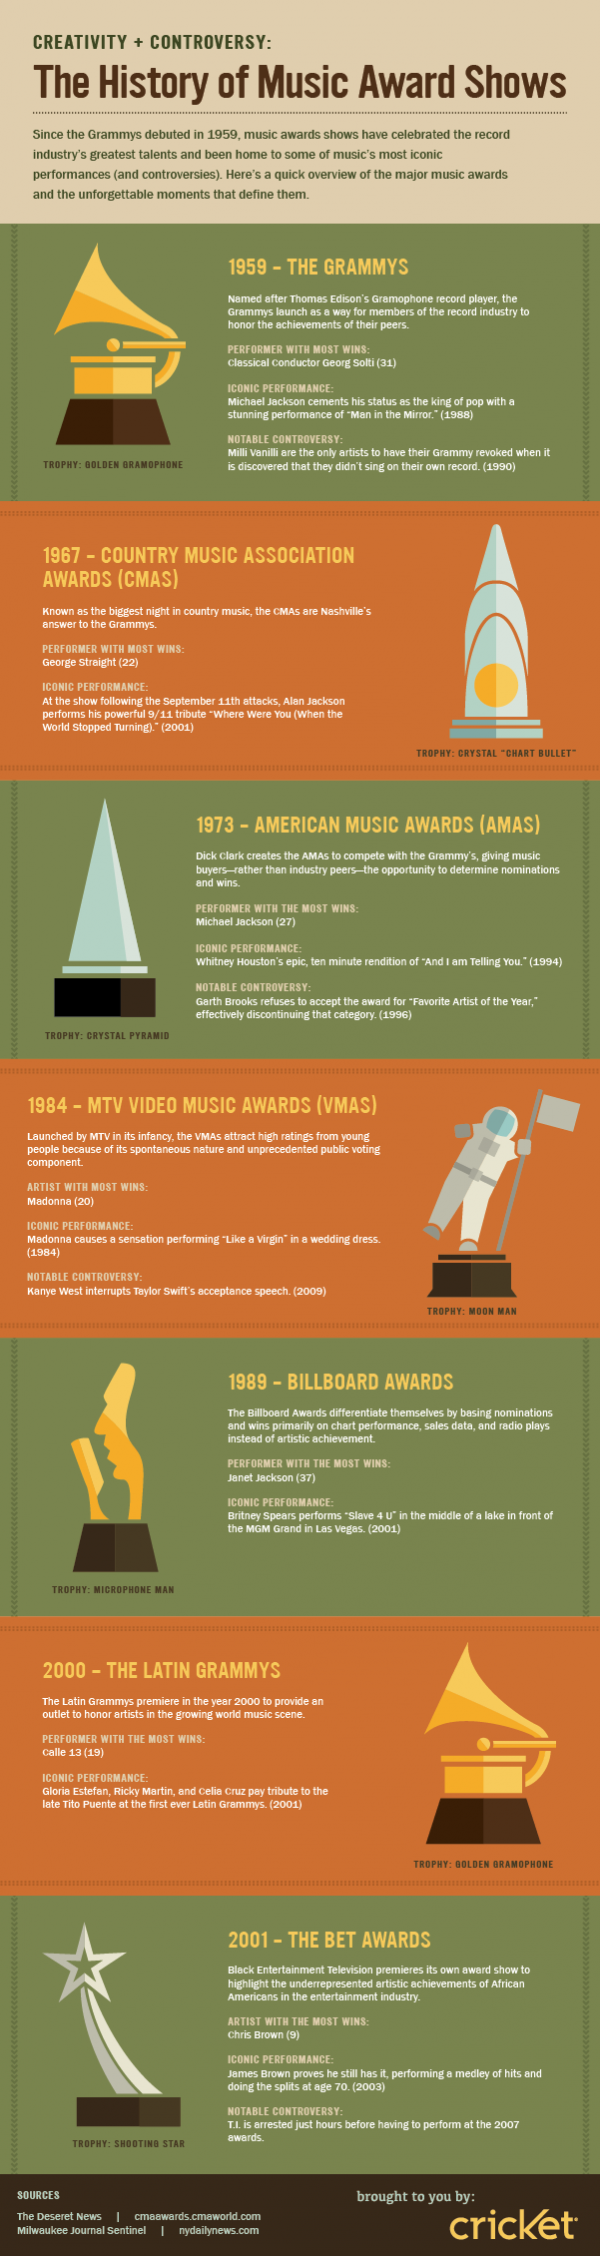 The history of music award shows